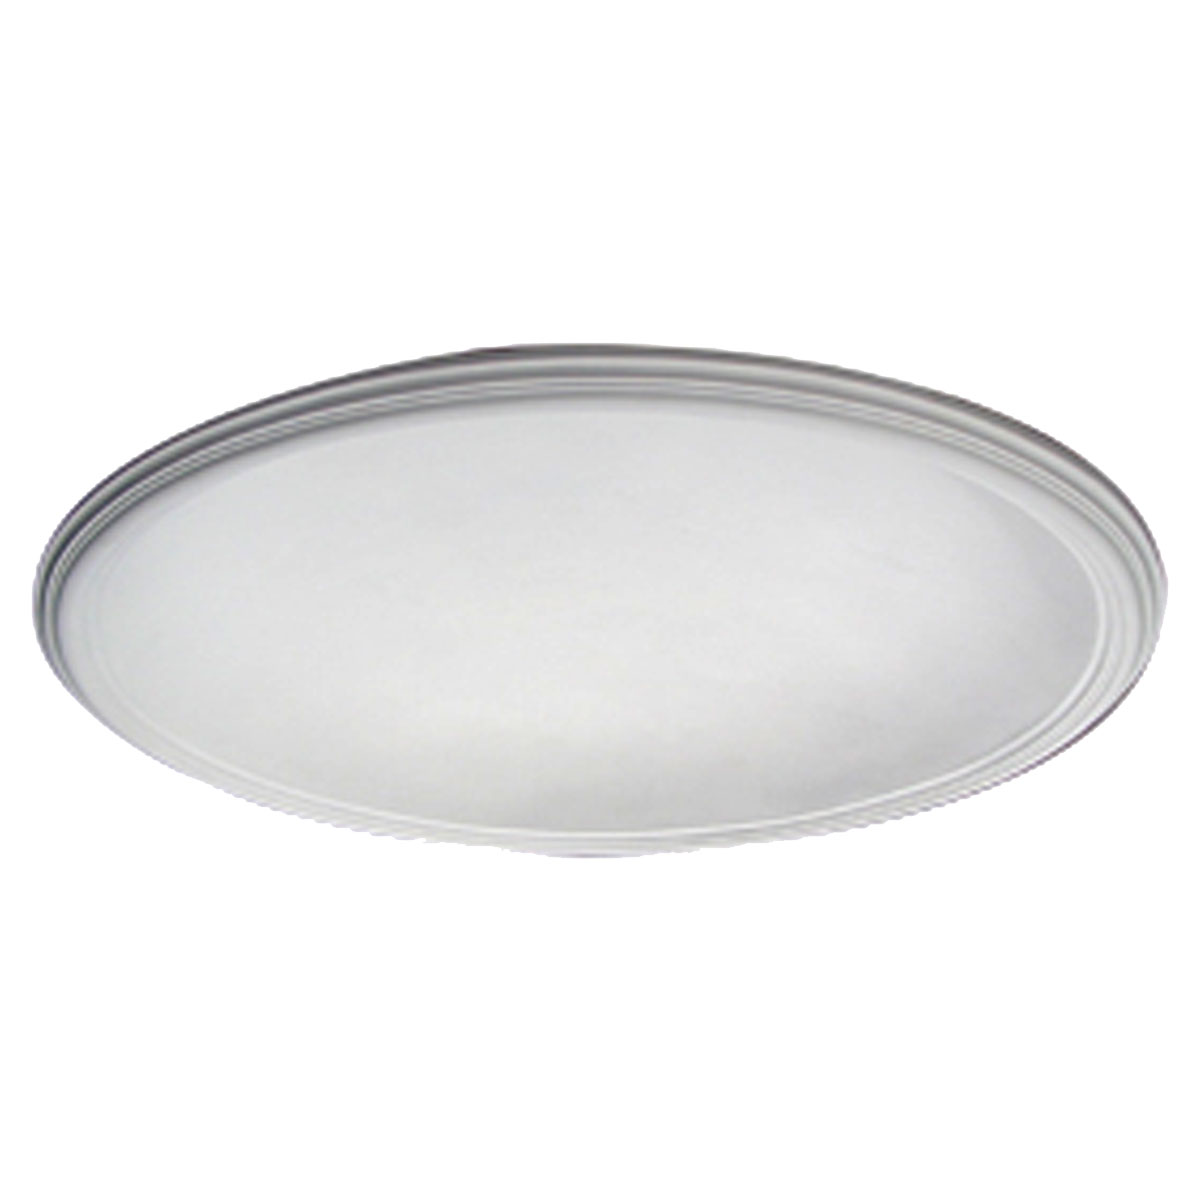 """DOME44SM 44-1/8""""OD x 39""""ID x 8-3/8""""D,Recessed Smooth Ceiling Dome,2-1/2""""W Trim (40""""Diameter x 7-3/4""""D Rough Opening)"""